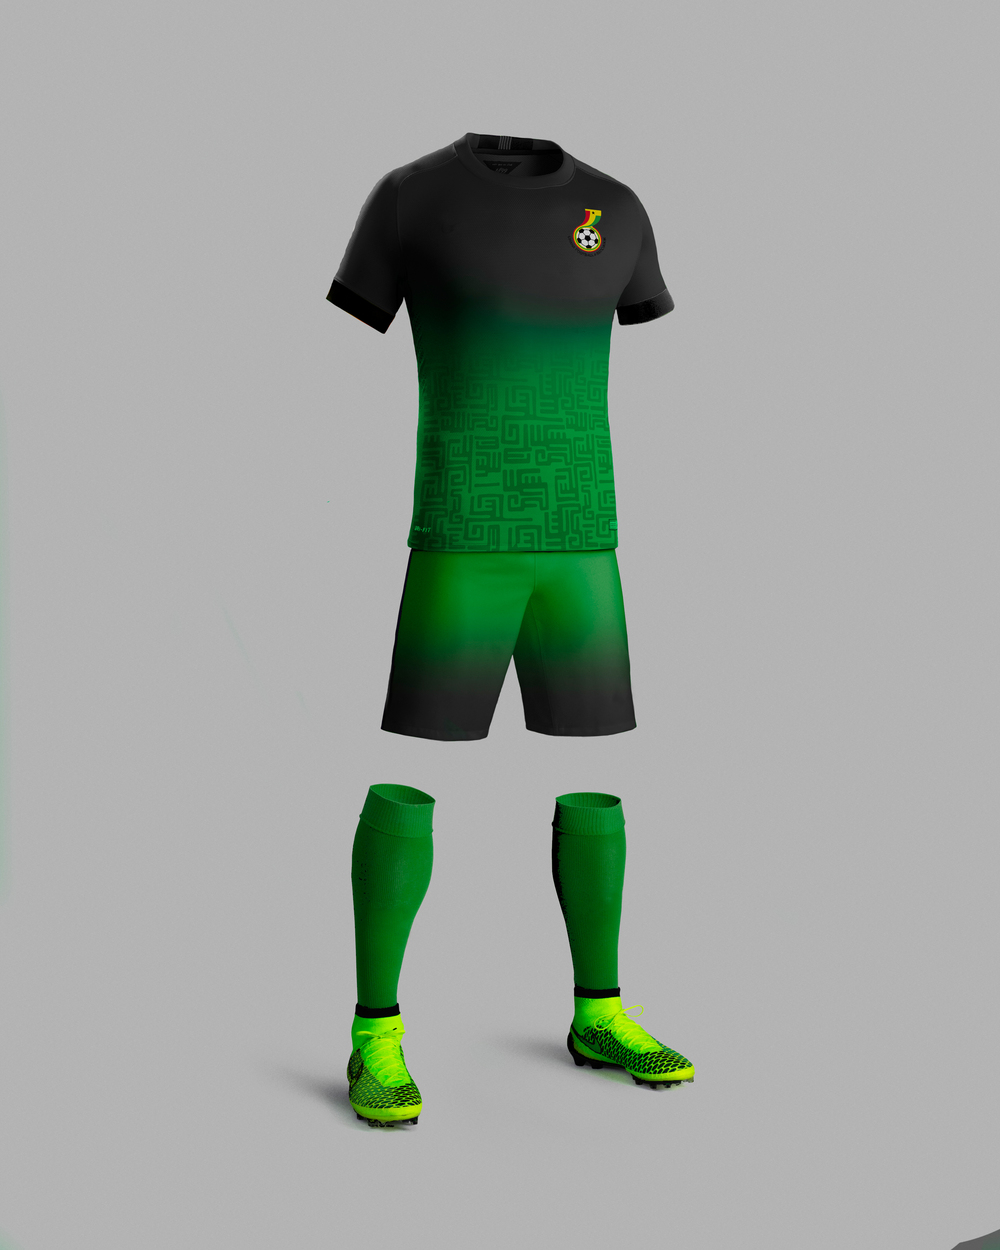 For Ghana, a green and black fade theme speaks to the rain forests that cover most of the country, while also accenting the athletes body. An ashanti pattern adorns the shirt, paying homage to the largest tribe in Ghana and their rich history. Ghana's National Football logo gives a bit of national pride to the chest of the uniform.